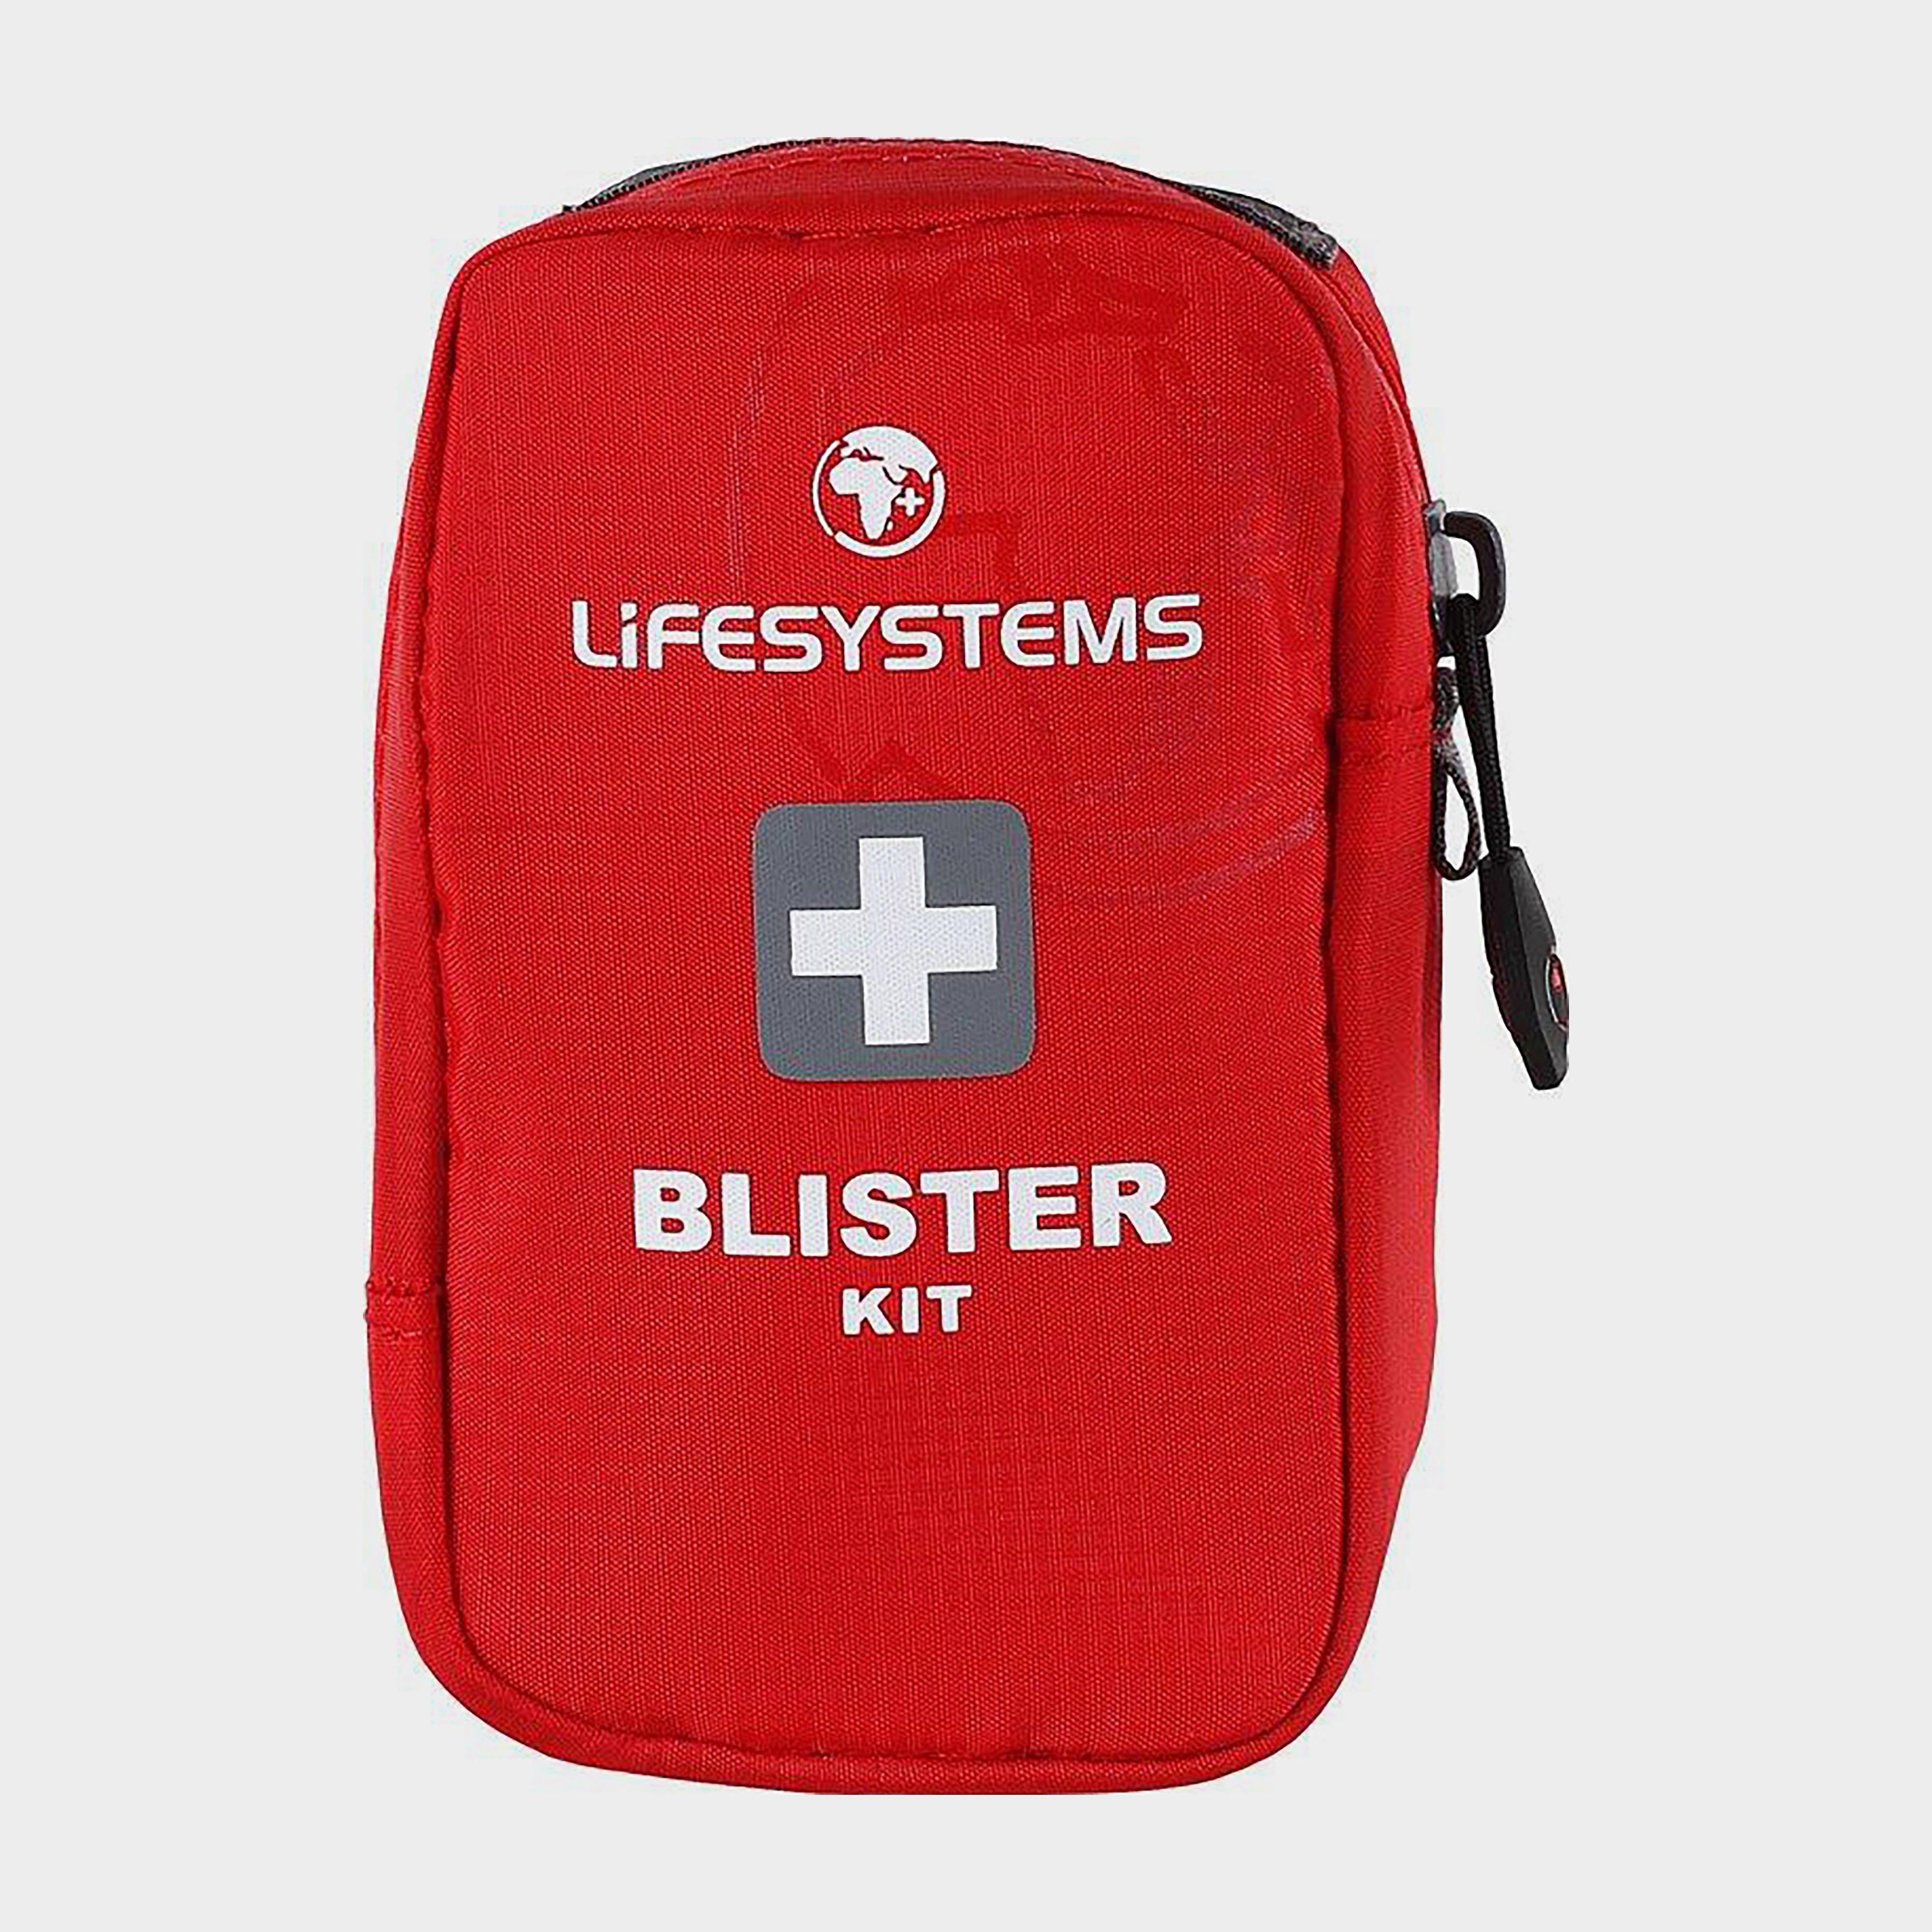 Lifesystems Lifesystems Blister First Aid Kit - N/A, N/A